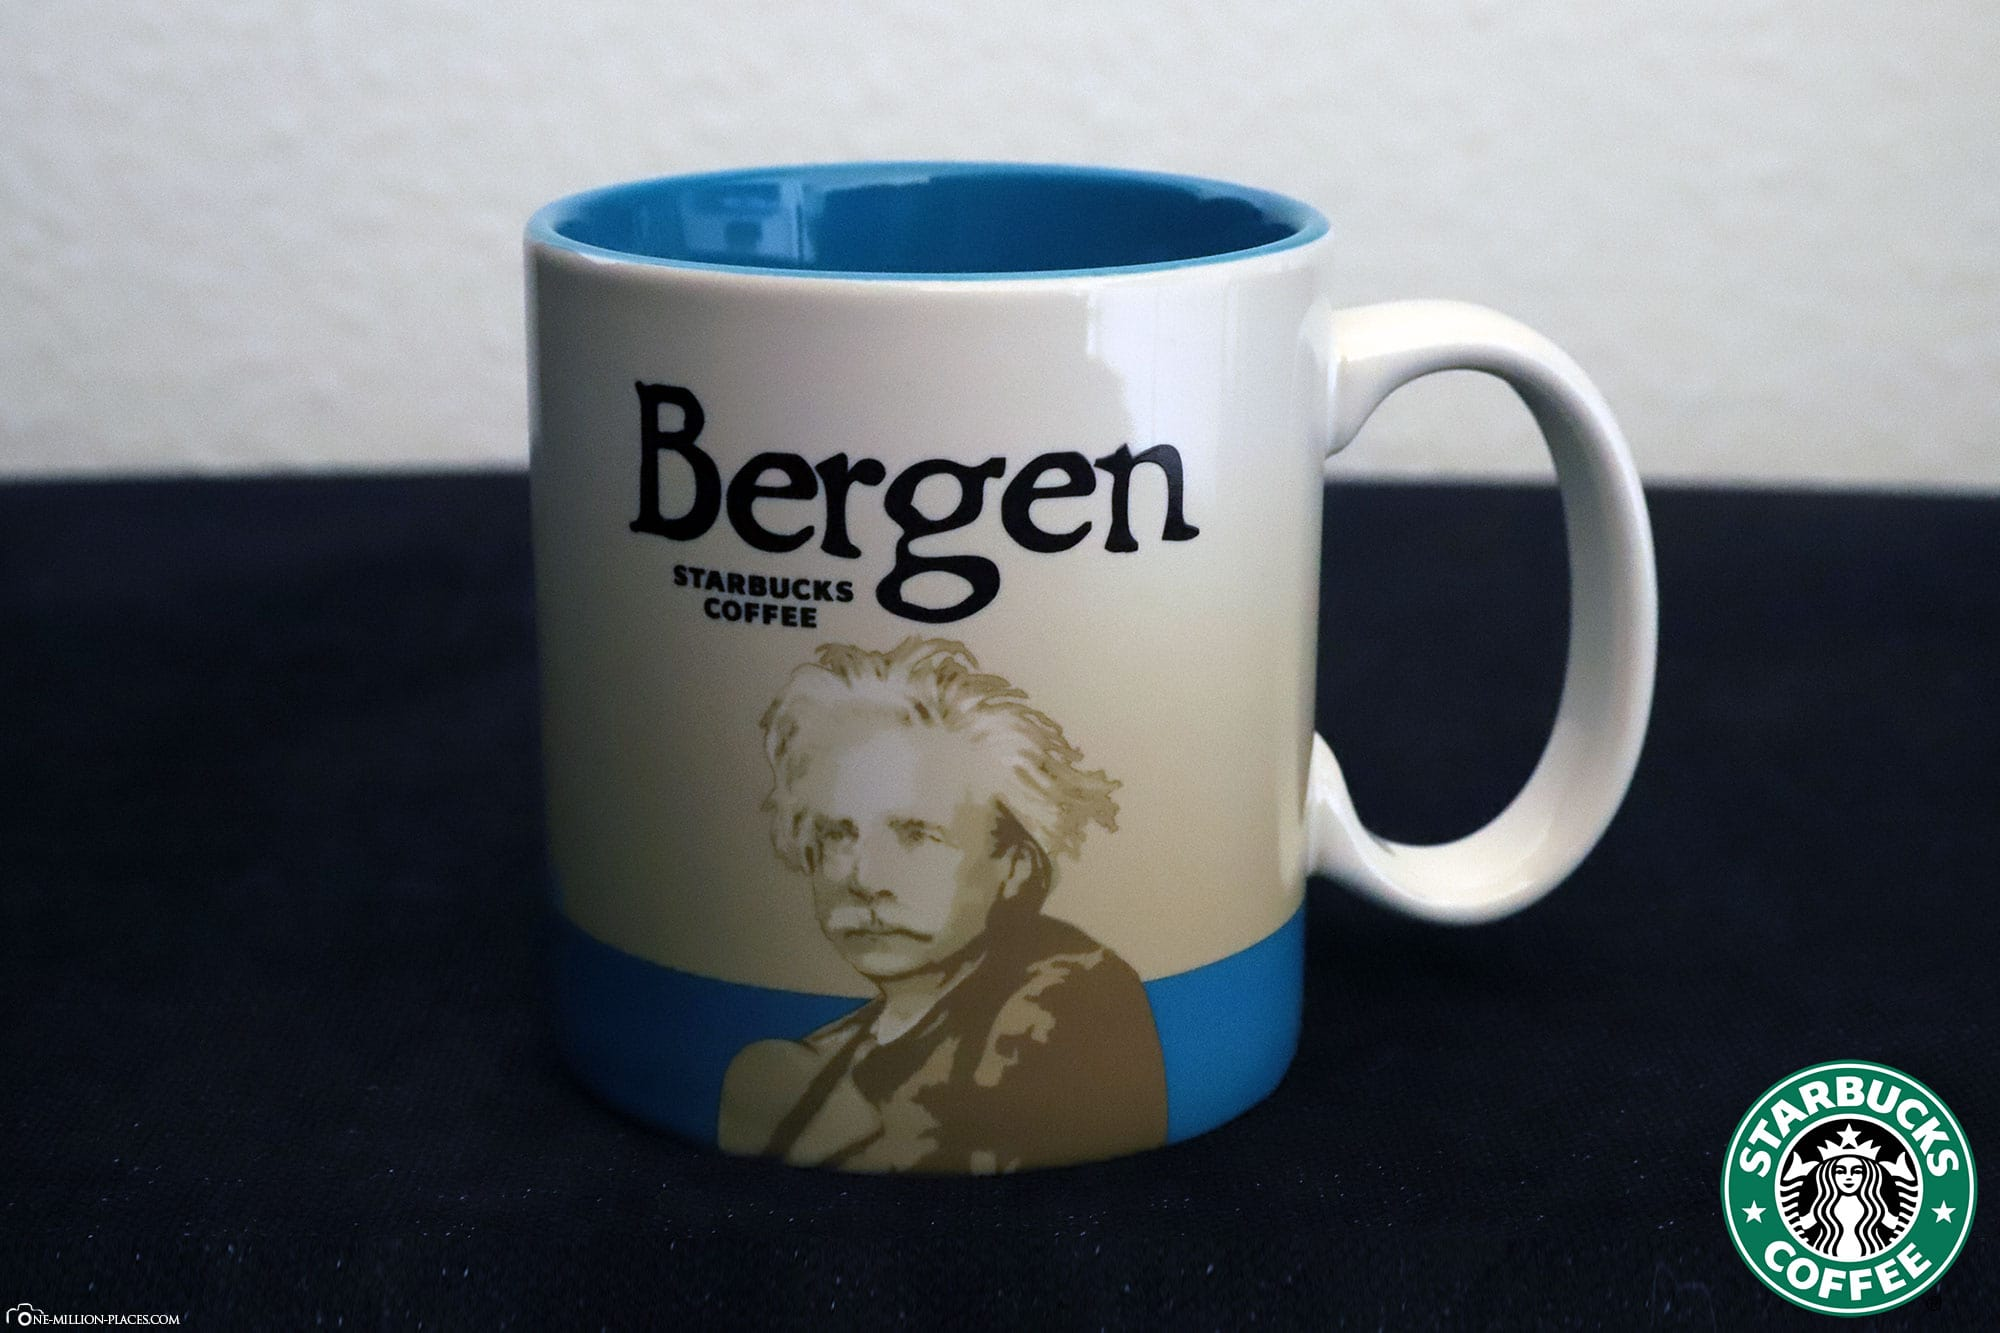 Bergen, Starbucks Cup, Global Icon Series, City Mugs, Collection, Norway, Travelreport